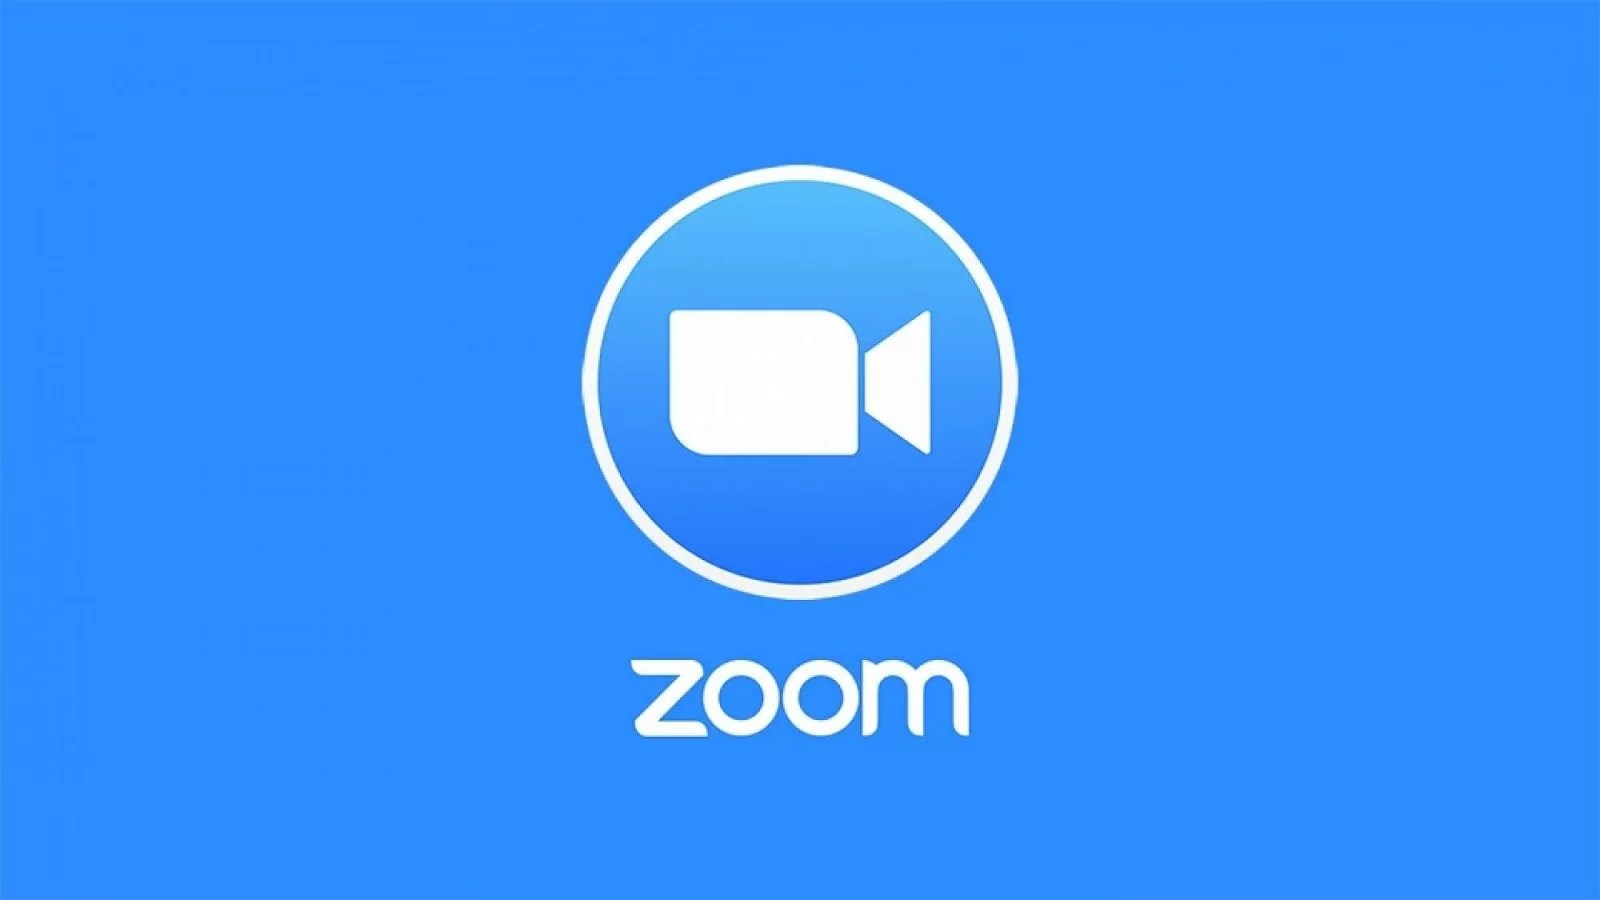 Zoom Cloud Meetings: How to Set Up and Use It? - TechOwns